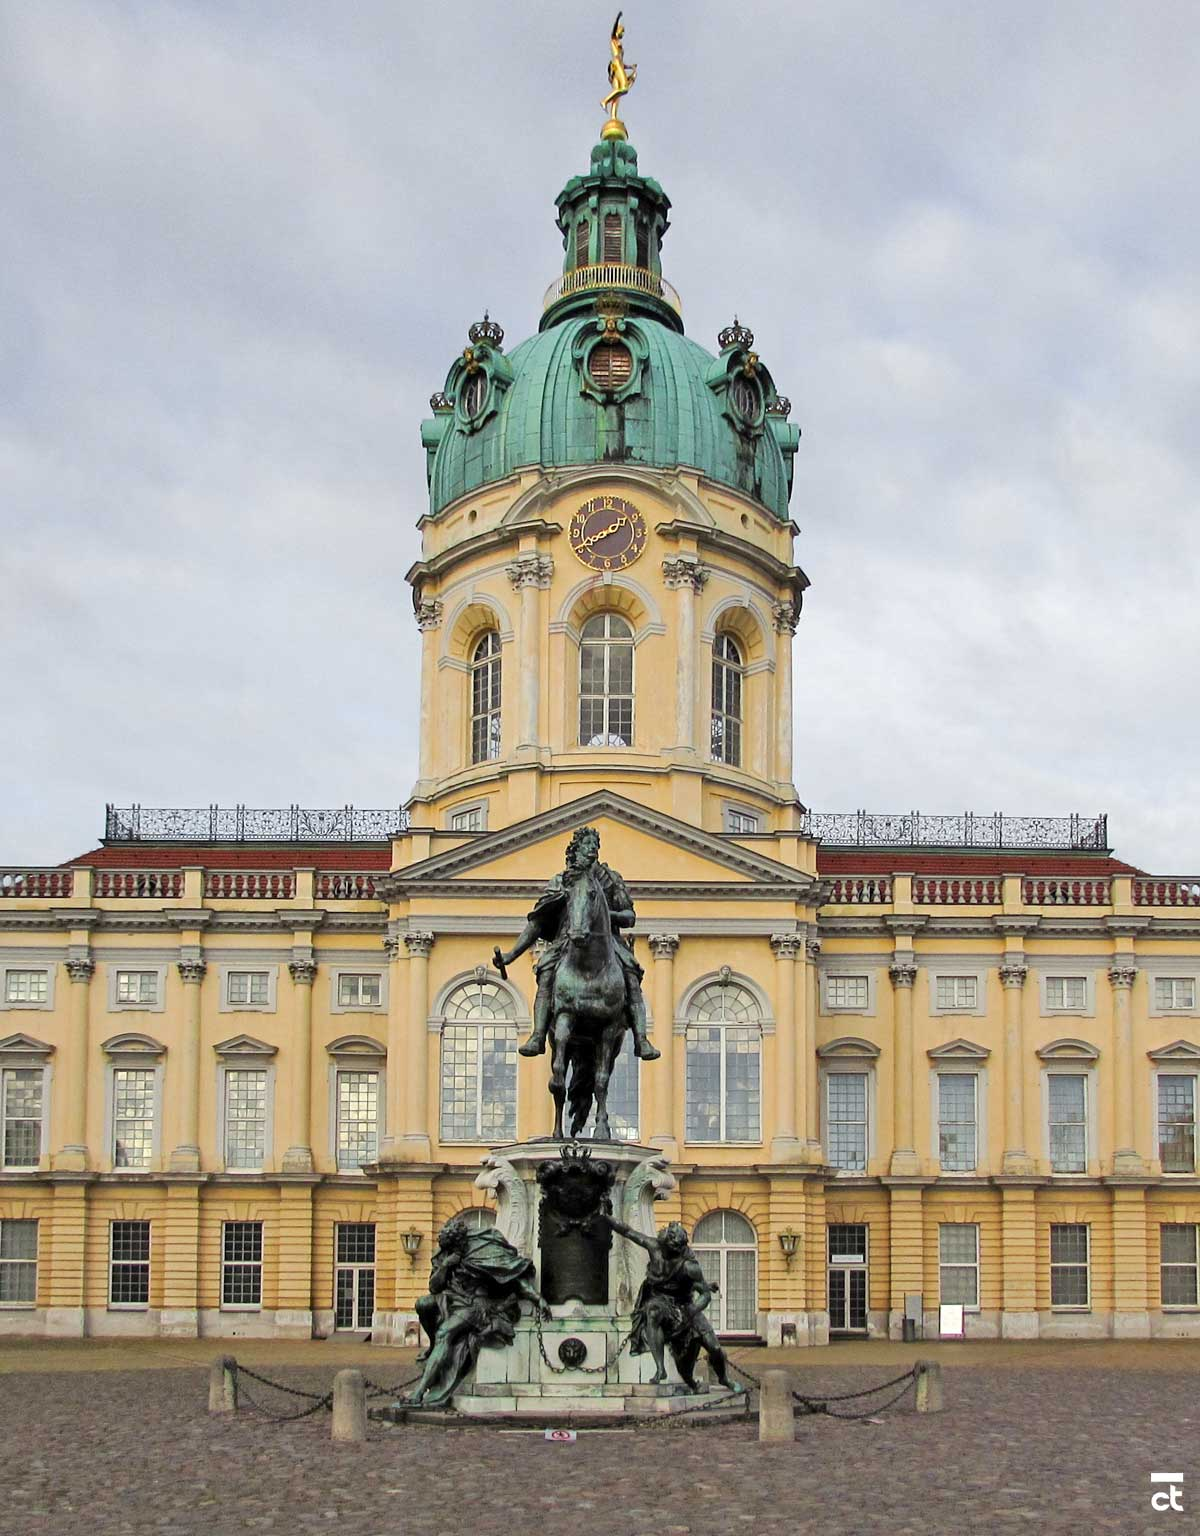 SCHLOSS CHARLOTTENBURG - BERLIN TRAVEL GUIDE: 55 Things to Do in Berlin, Germany